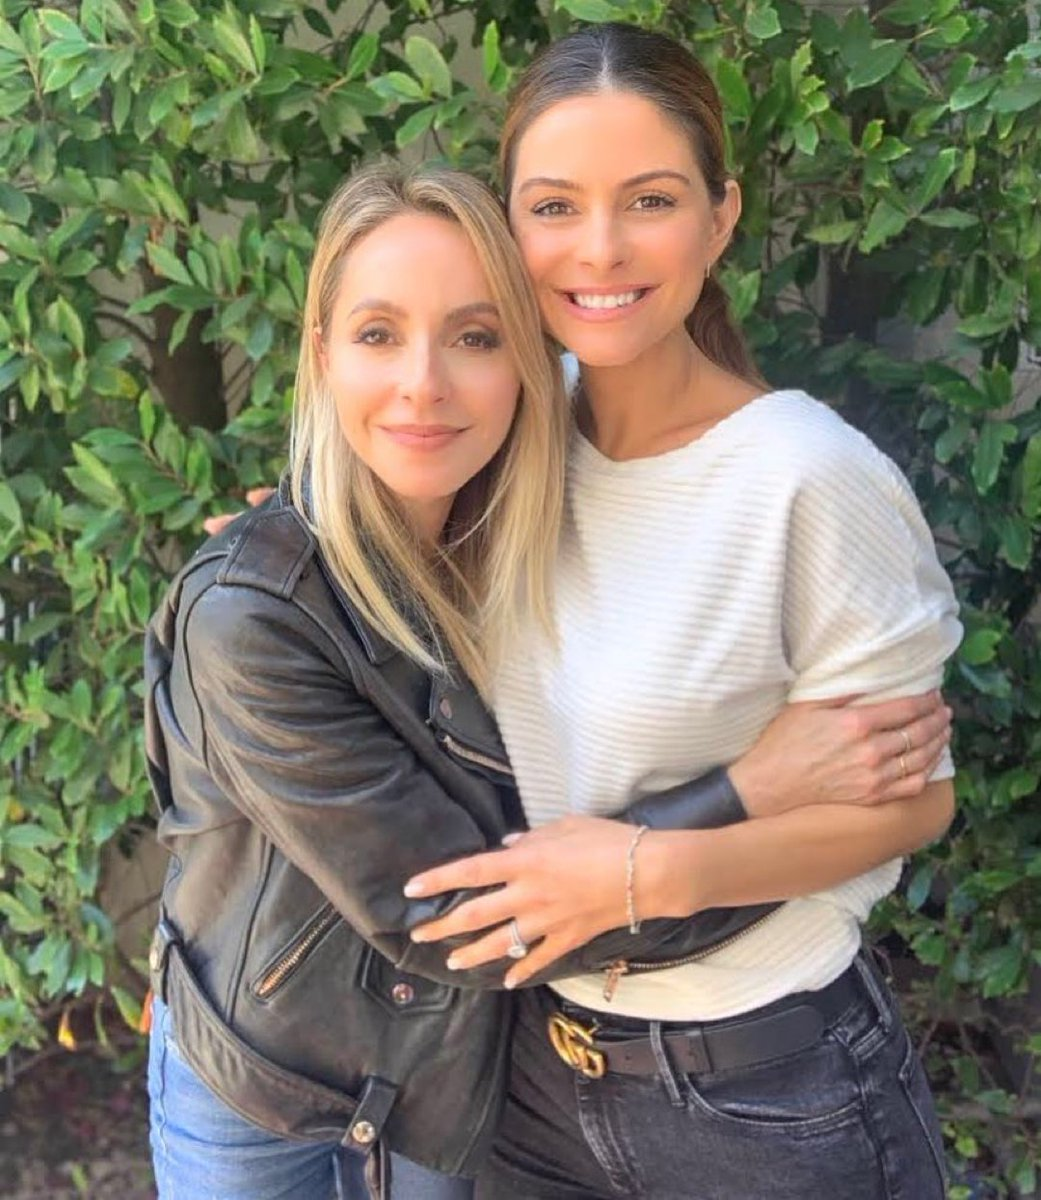 I made a new friend in L.A.... @mariamenounos is an angel! Check out our conversation about joy & manifesting on her podcast, #BetterTogether https://youtu.be/TD8OiMai0pE